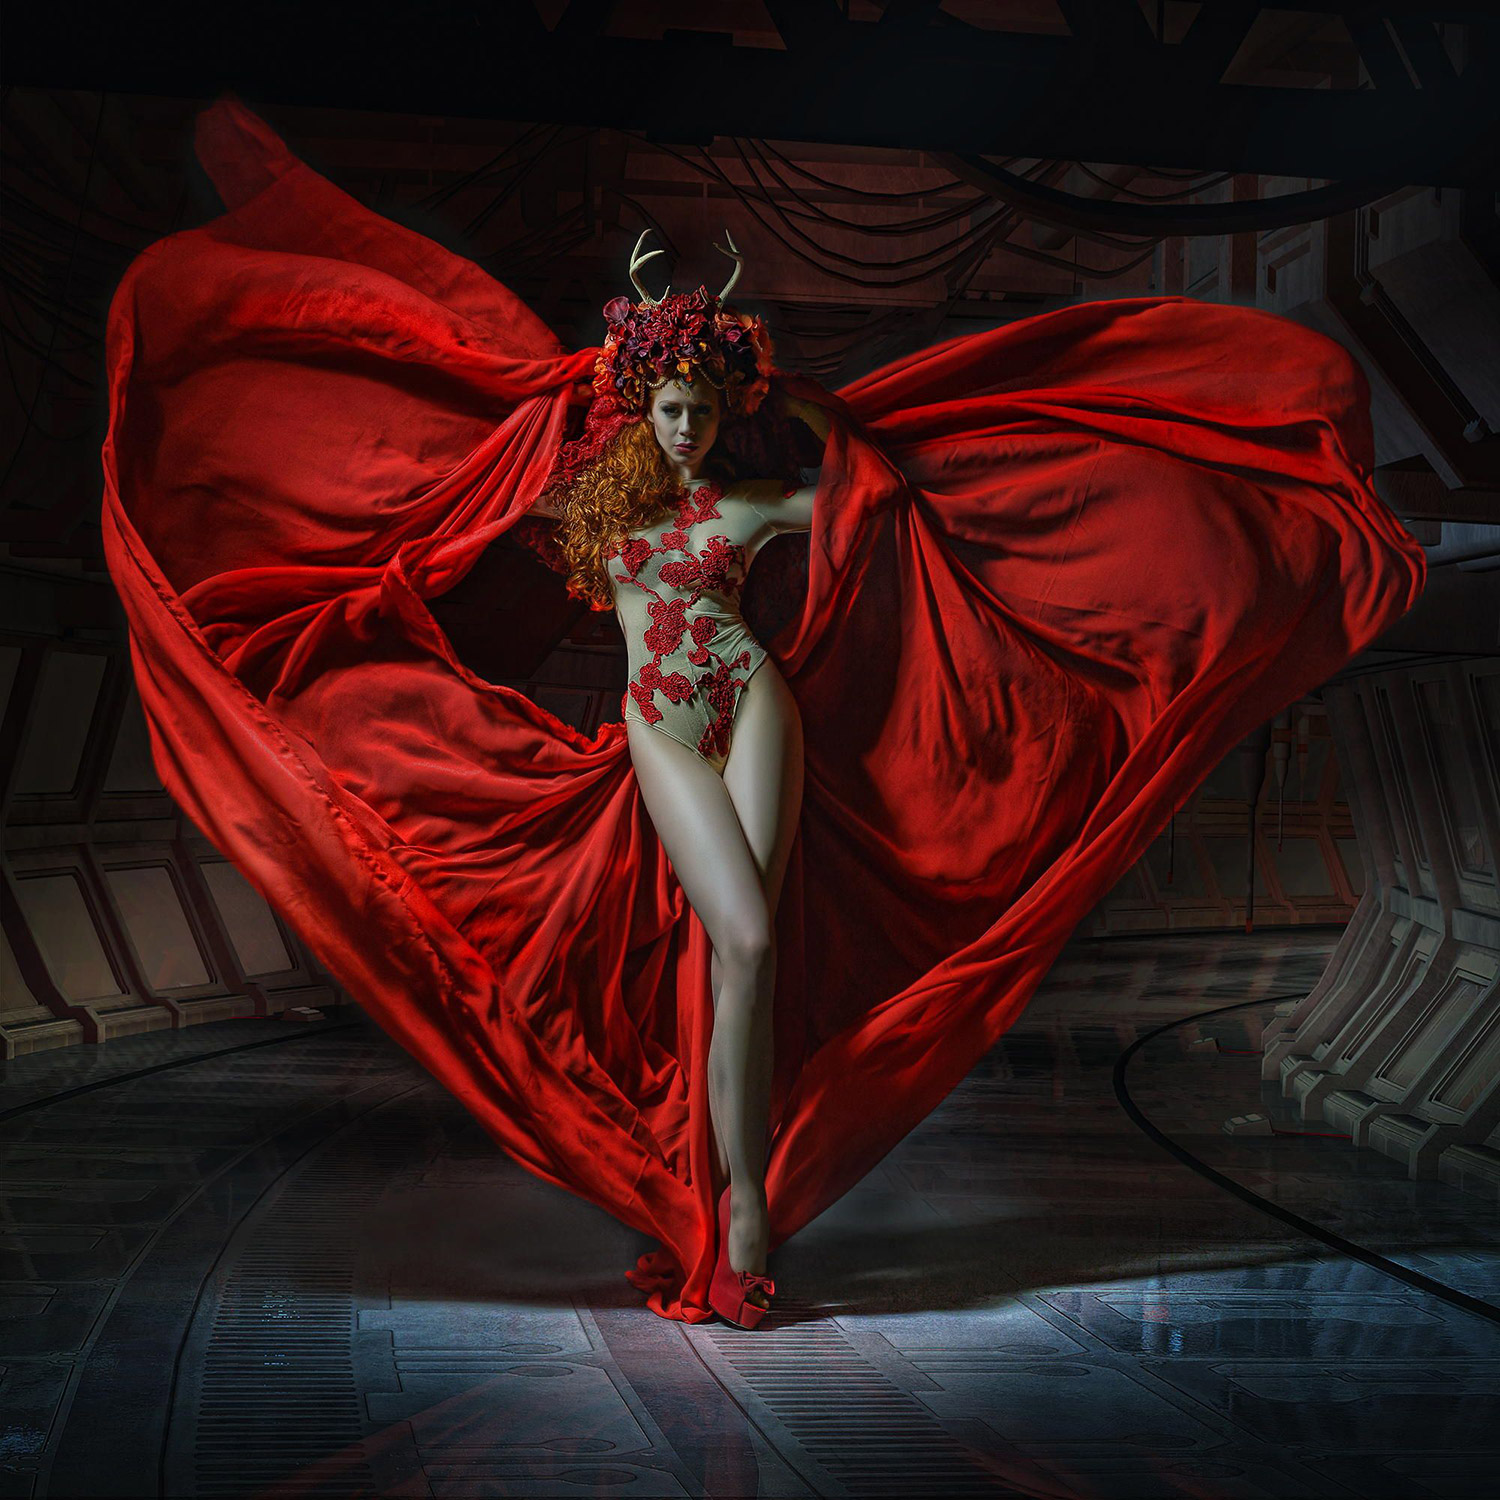 Stefan Gesell - Captain of the Hearts, model Ophelia Overdose